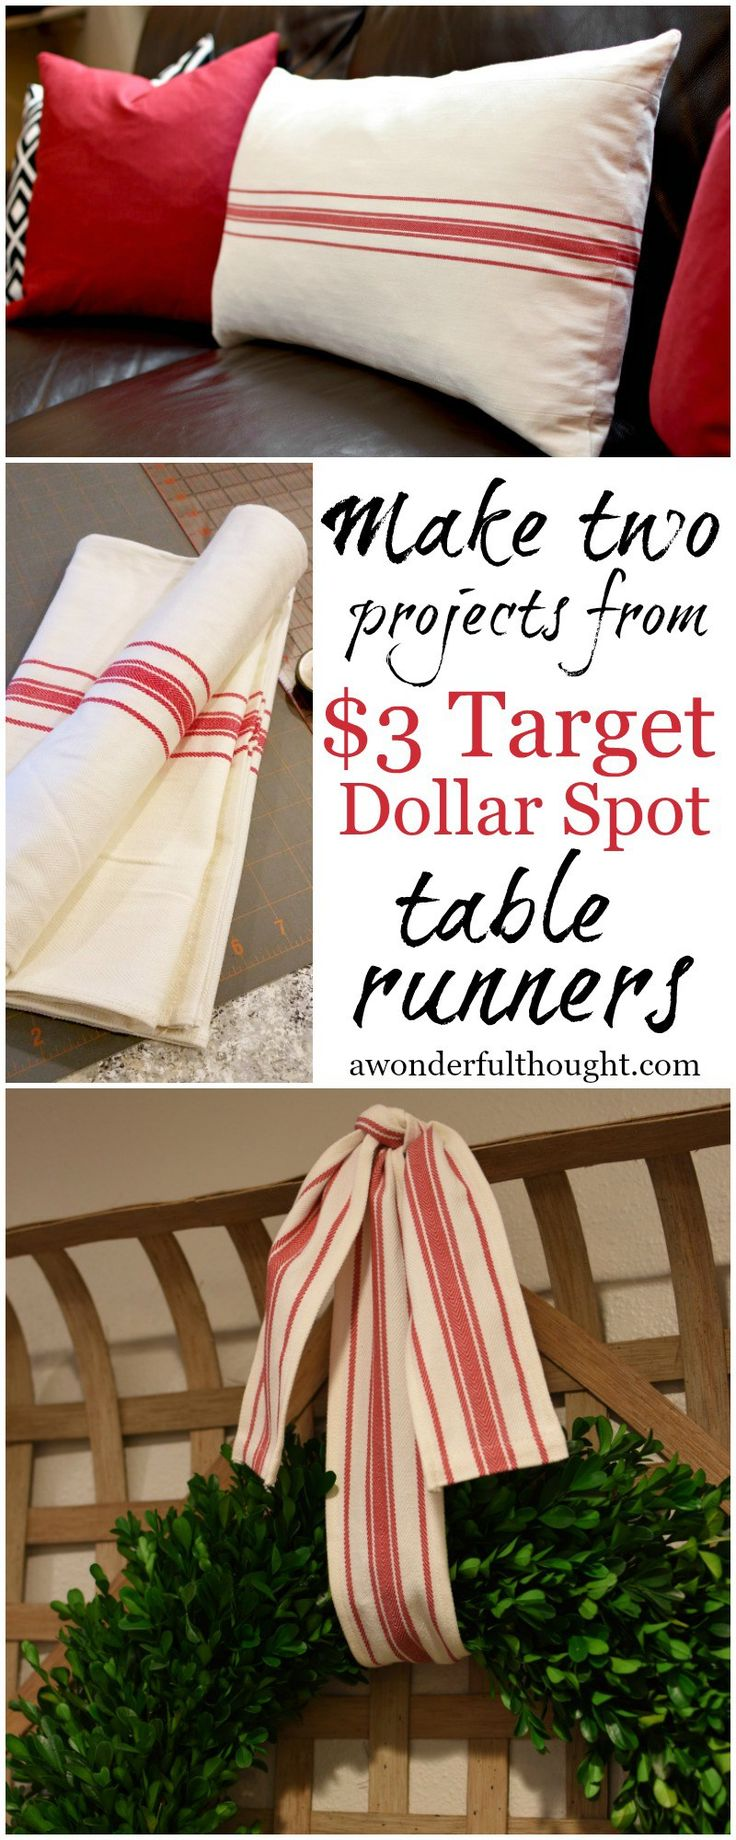 A Wonderful Thought | Make two projects from $3 Target dollar spot table runners | awonderfulthought.com